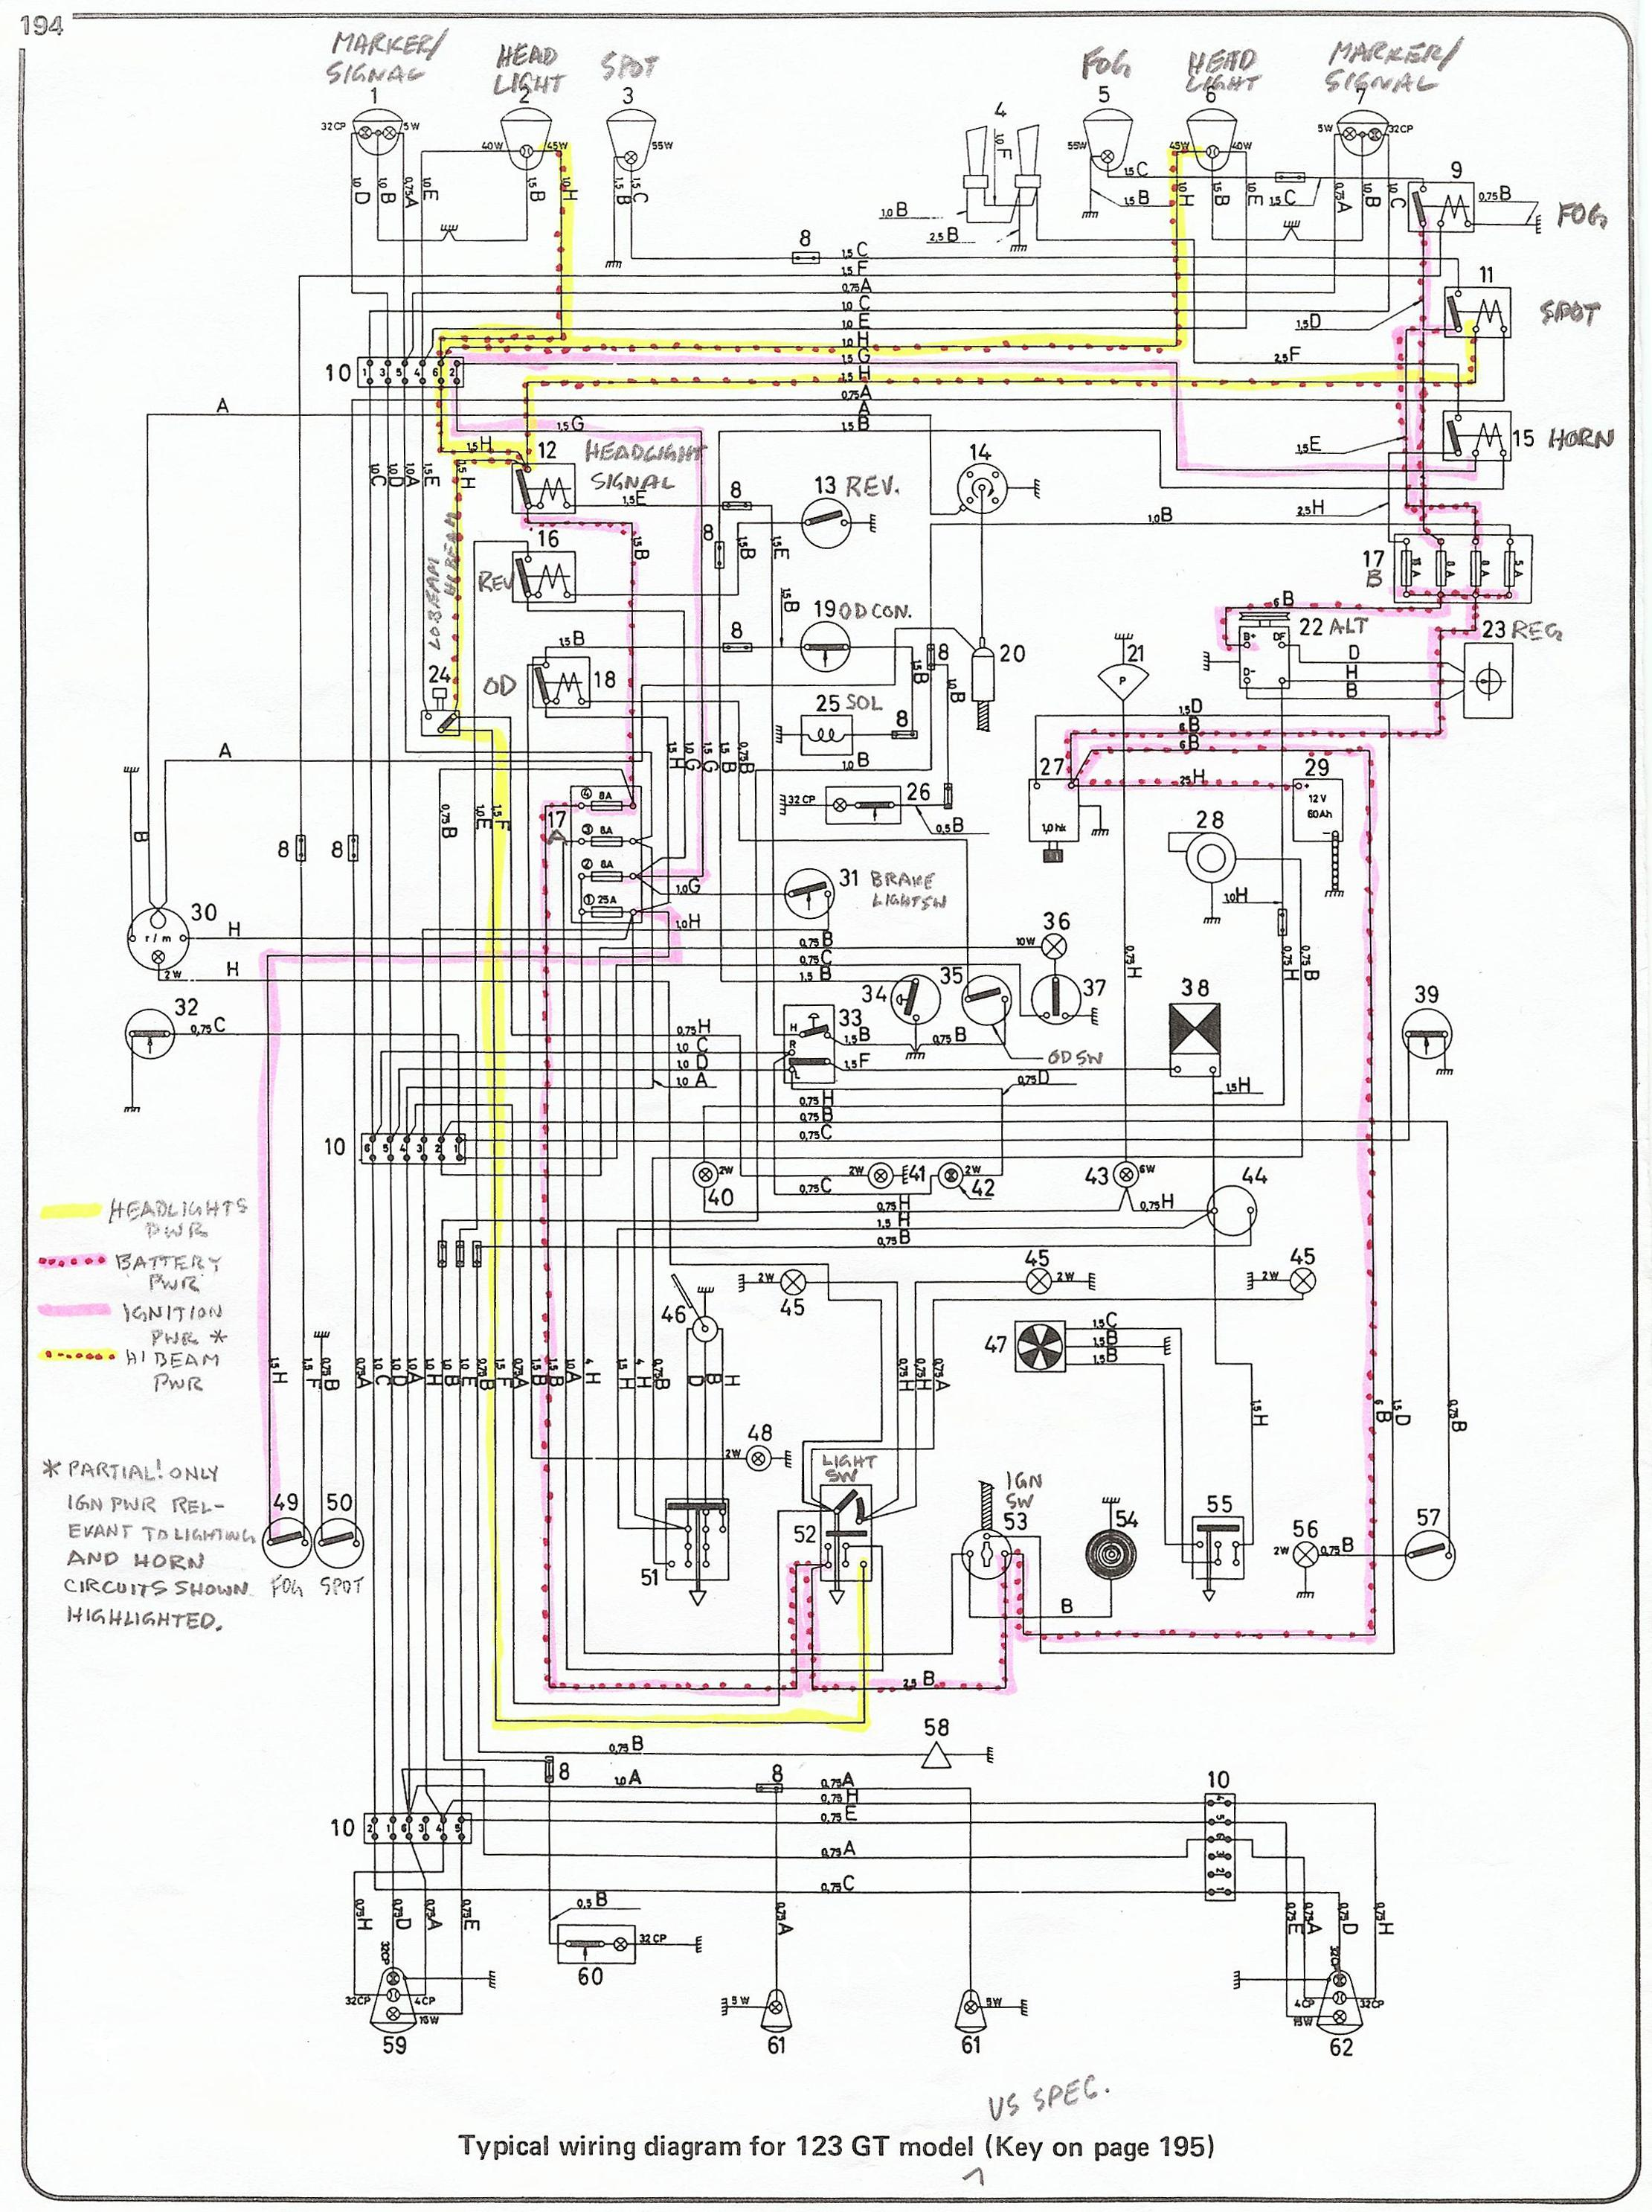 123GT-US-Wiring-Diagram-Lighting-Markup.jpg